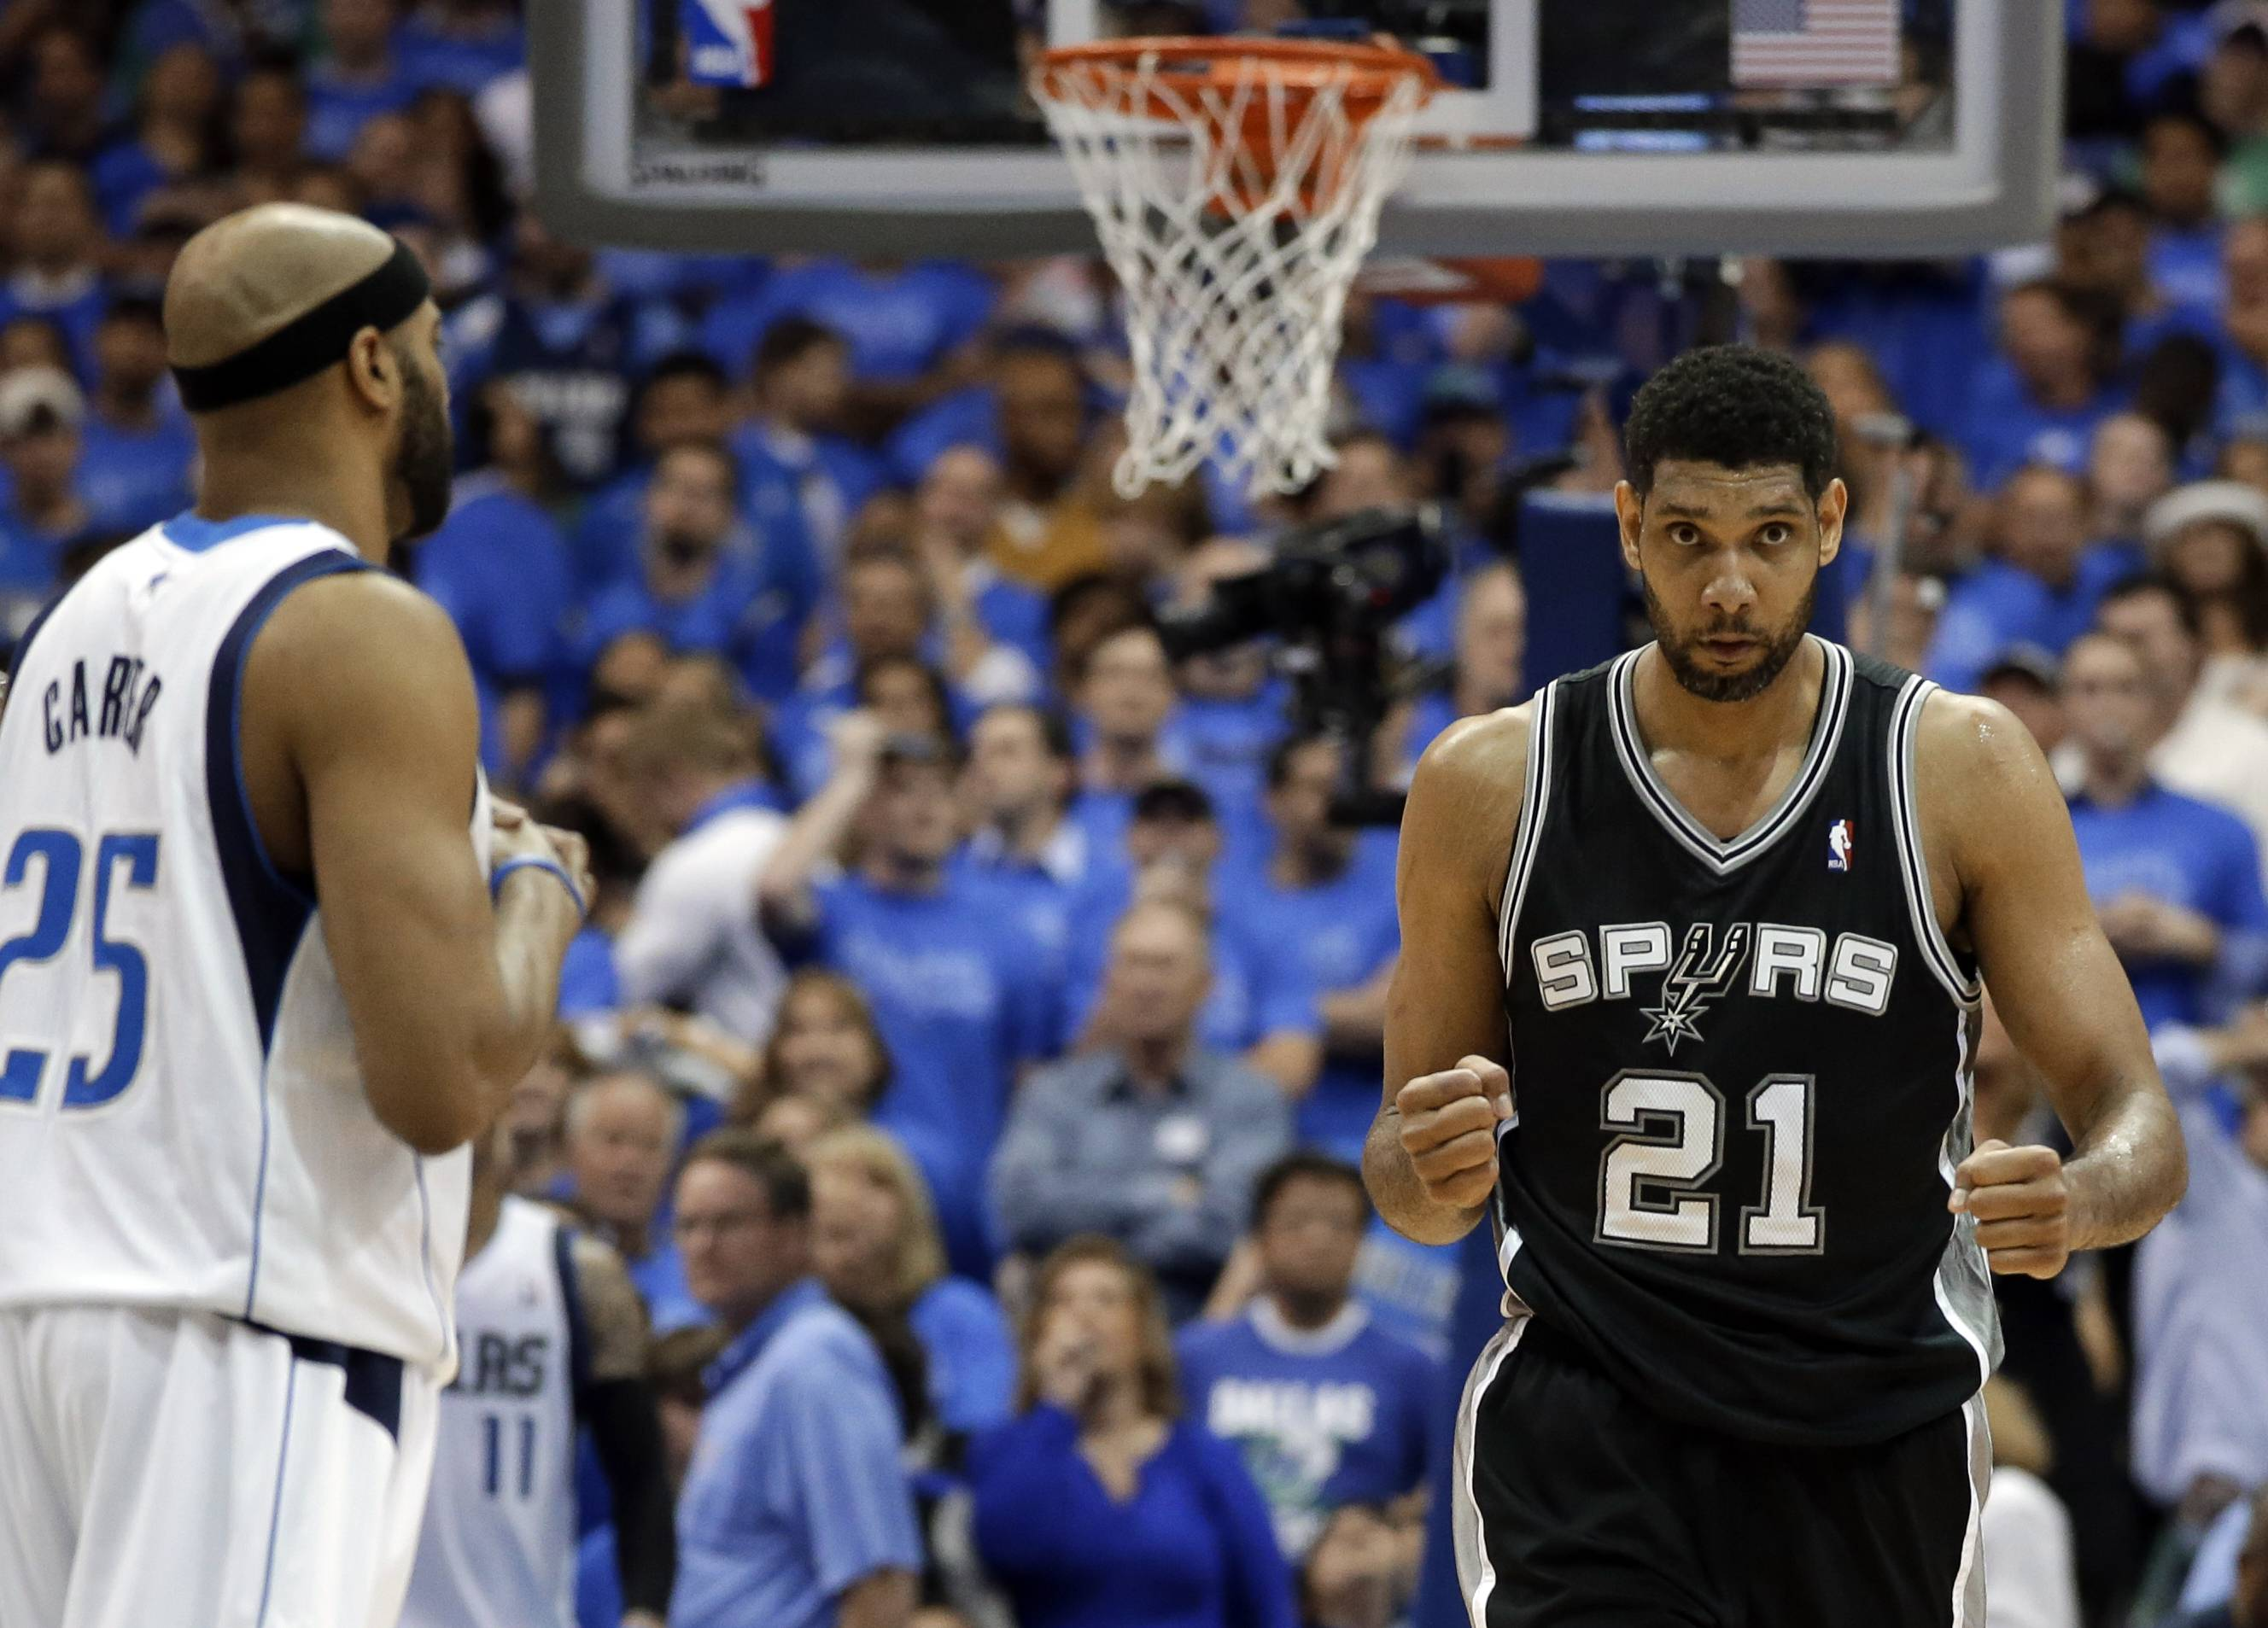 Dallas Mavericks' Vince Carter (25) watches as San Antonio Spurs' Tim Duncan (21) celebrates in the final seconds of Game 4 of their NBA basketball first-round playoff series, Monday.